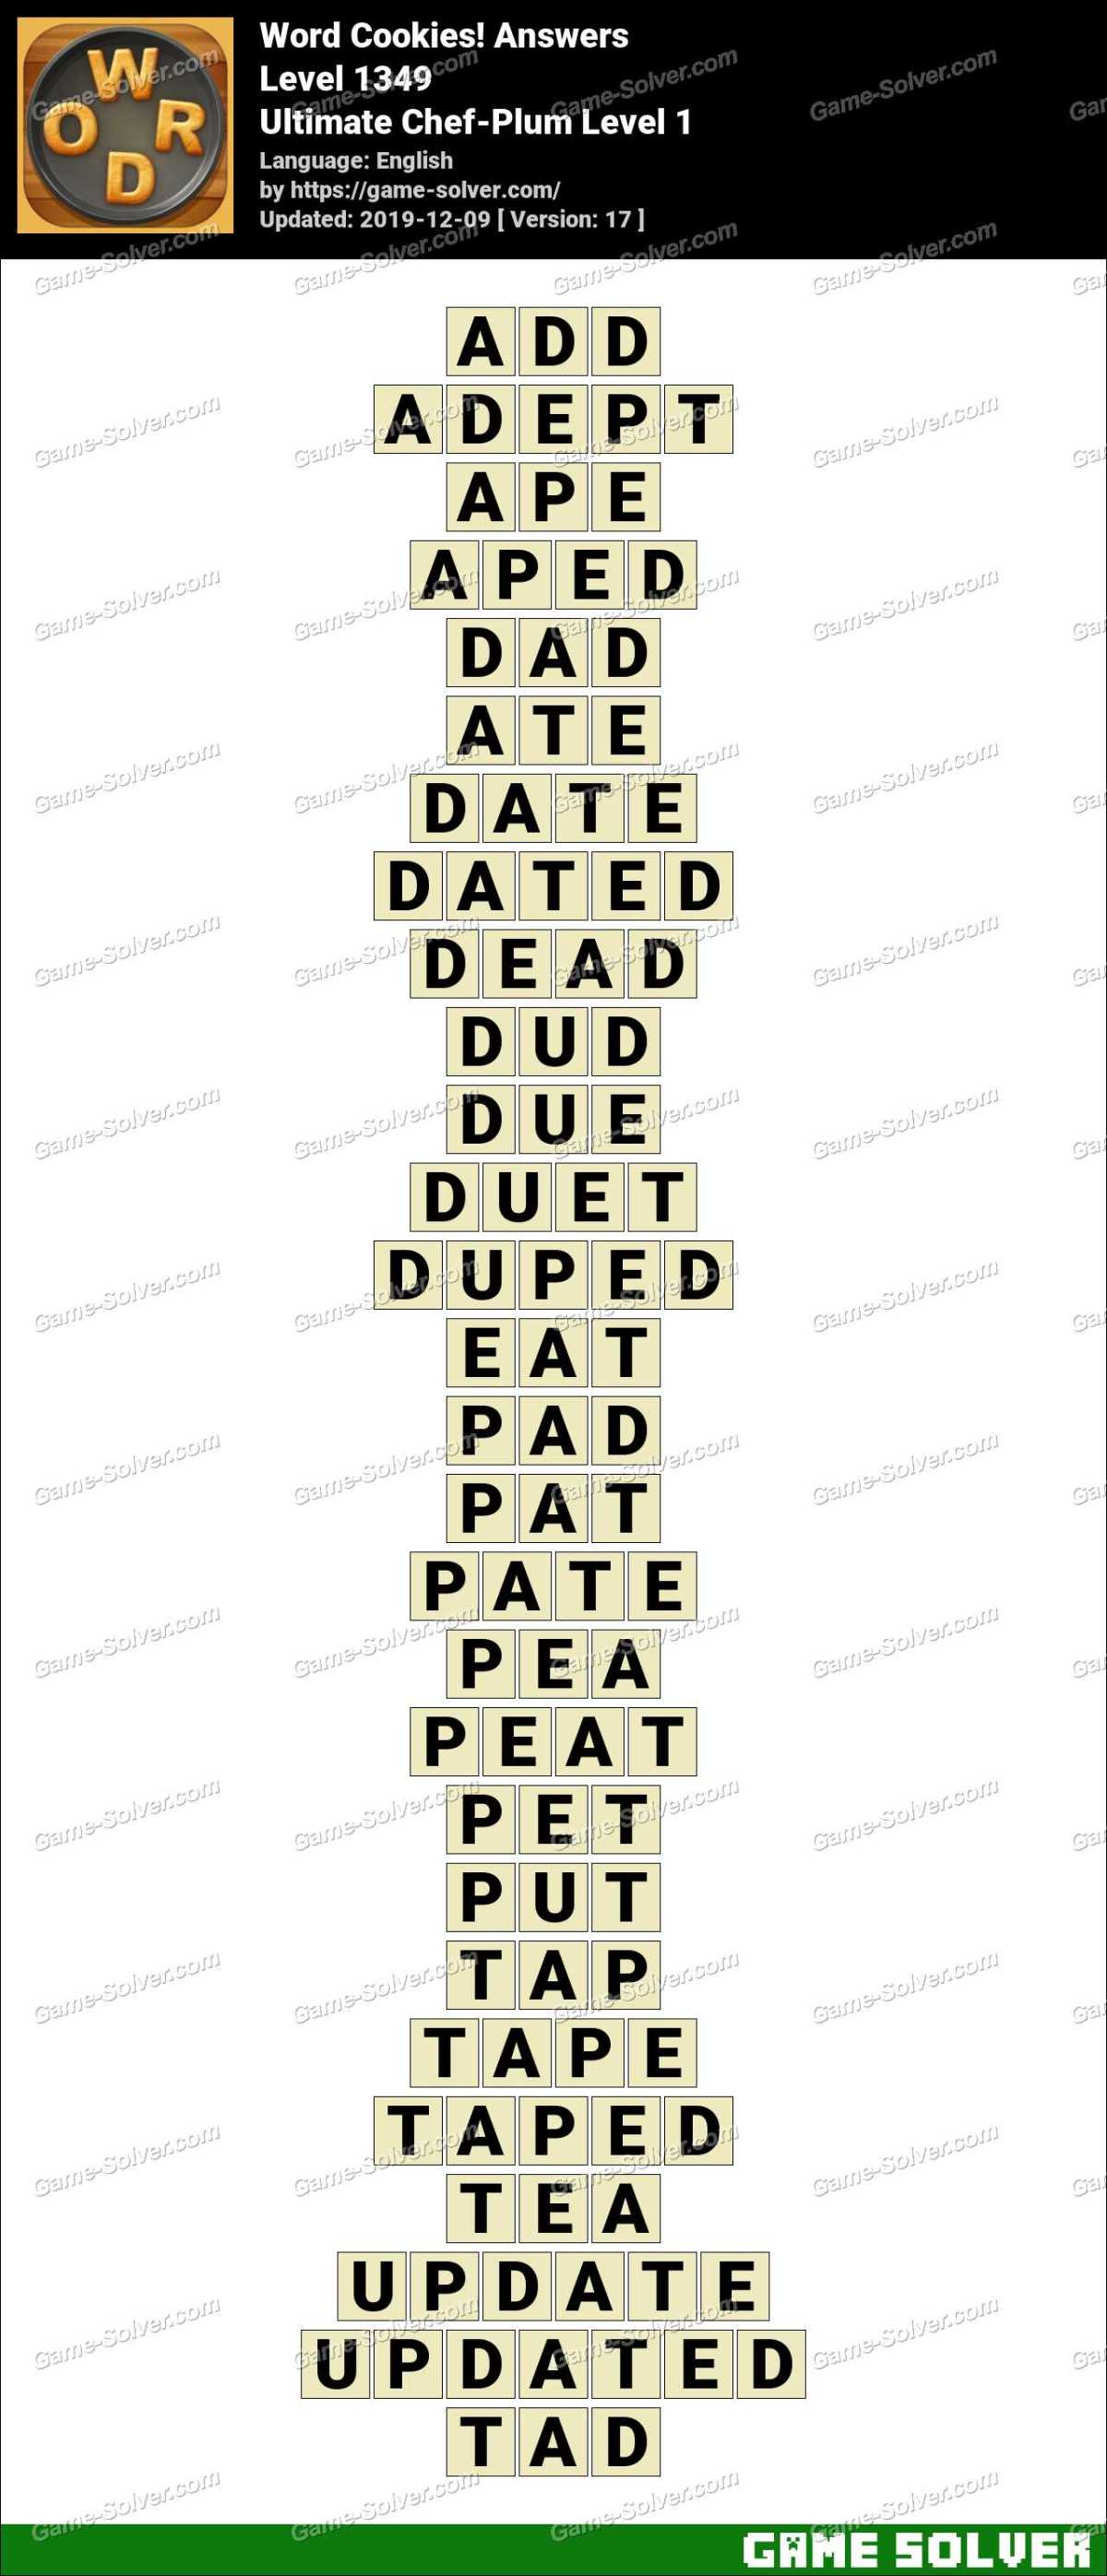 Word Cookies Ultimate Chef-Plum Level 1 Answers